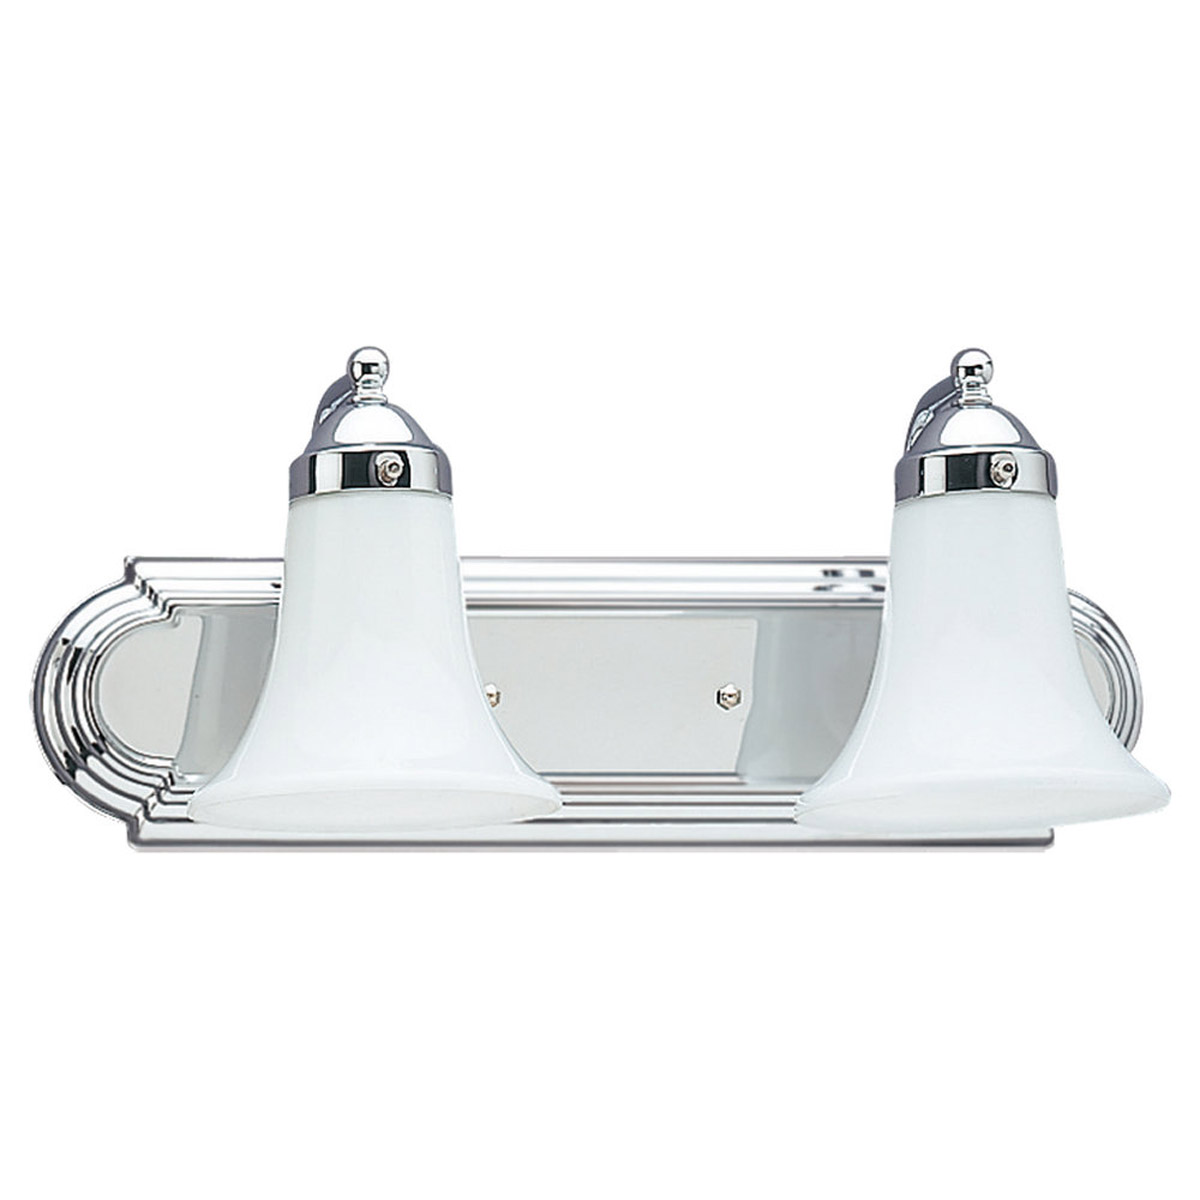 Sea Gull Lighting Astoria 2 Light Bath Vanity in Chrome 4858-05 photo